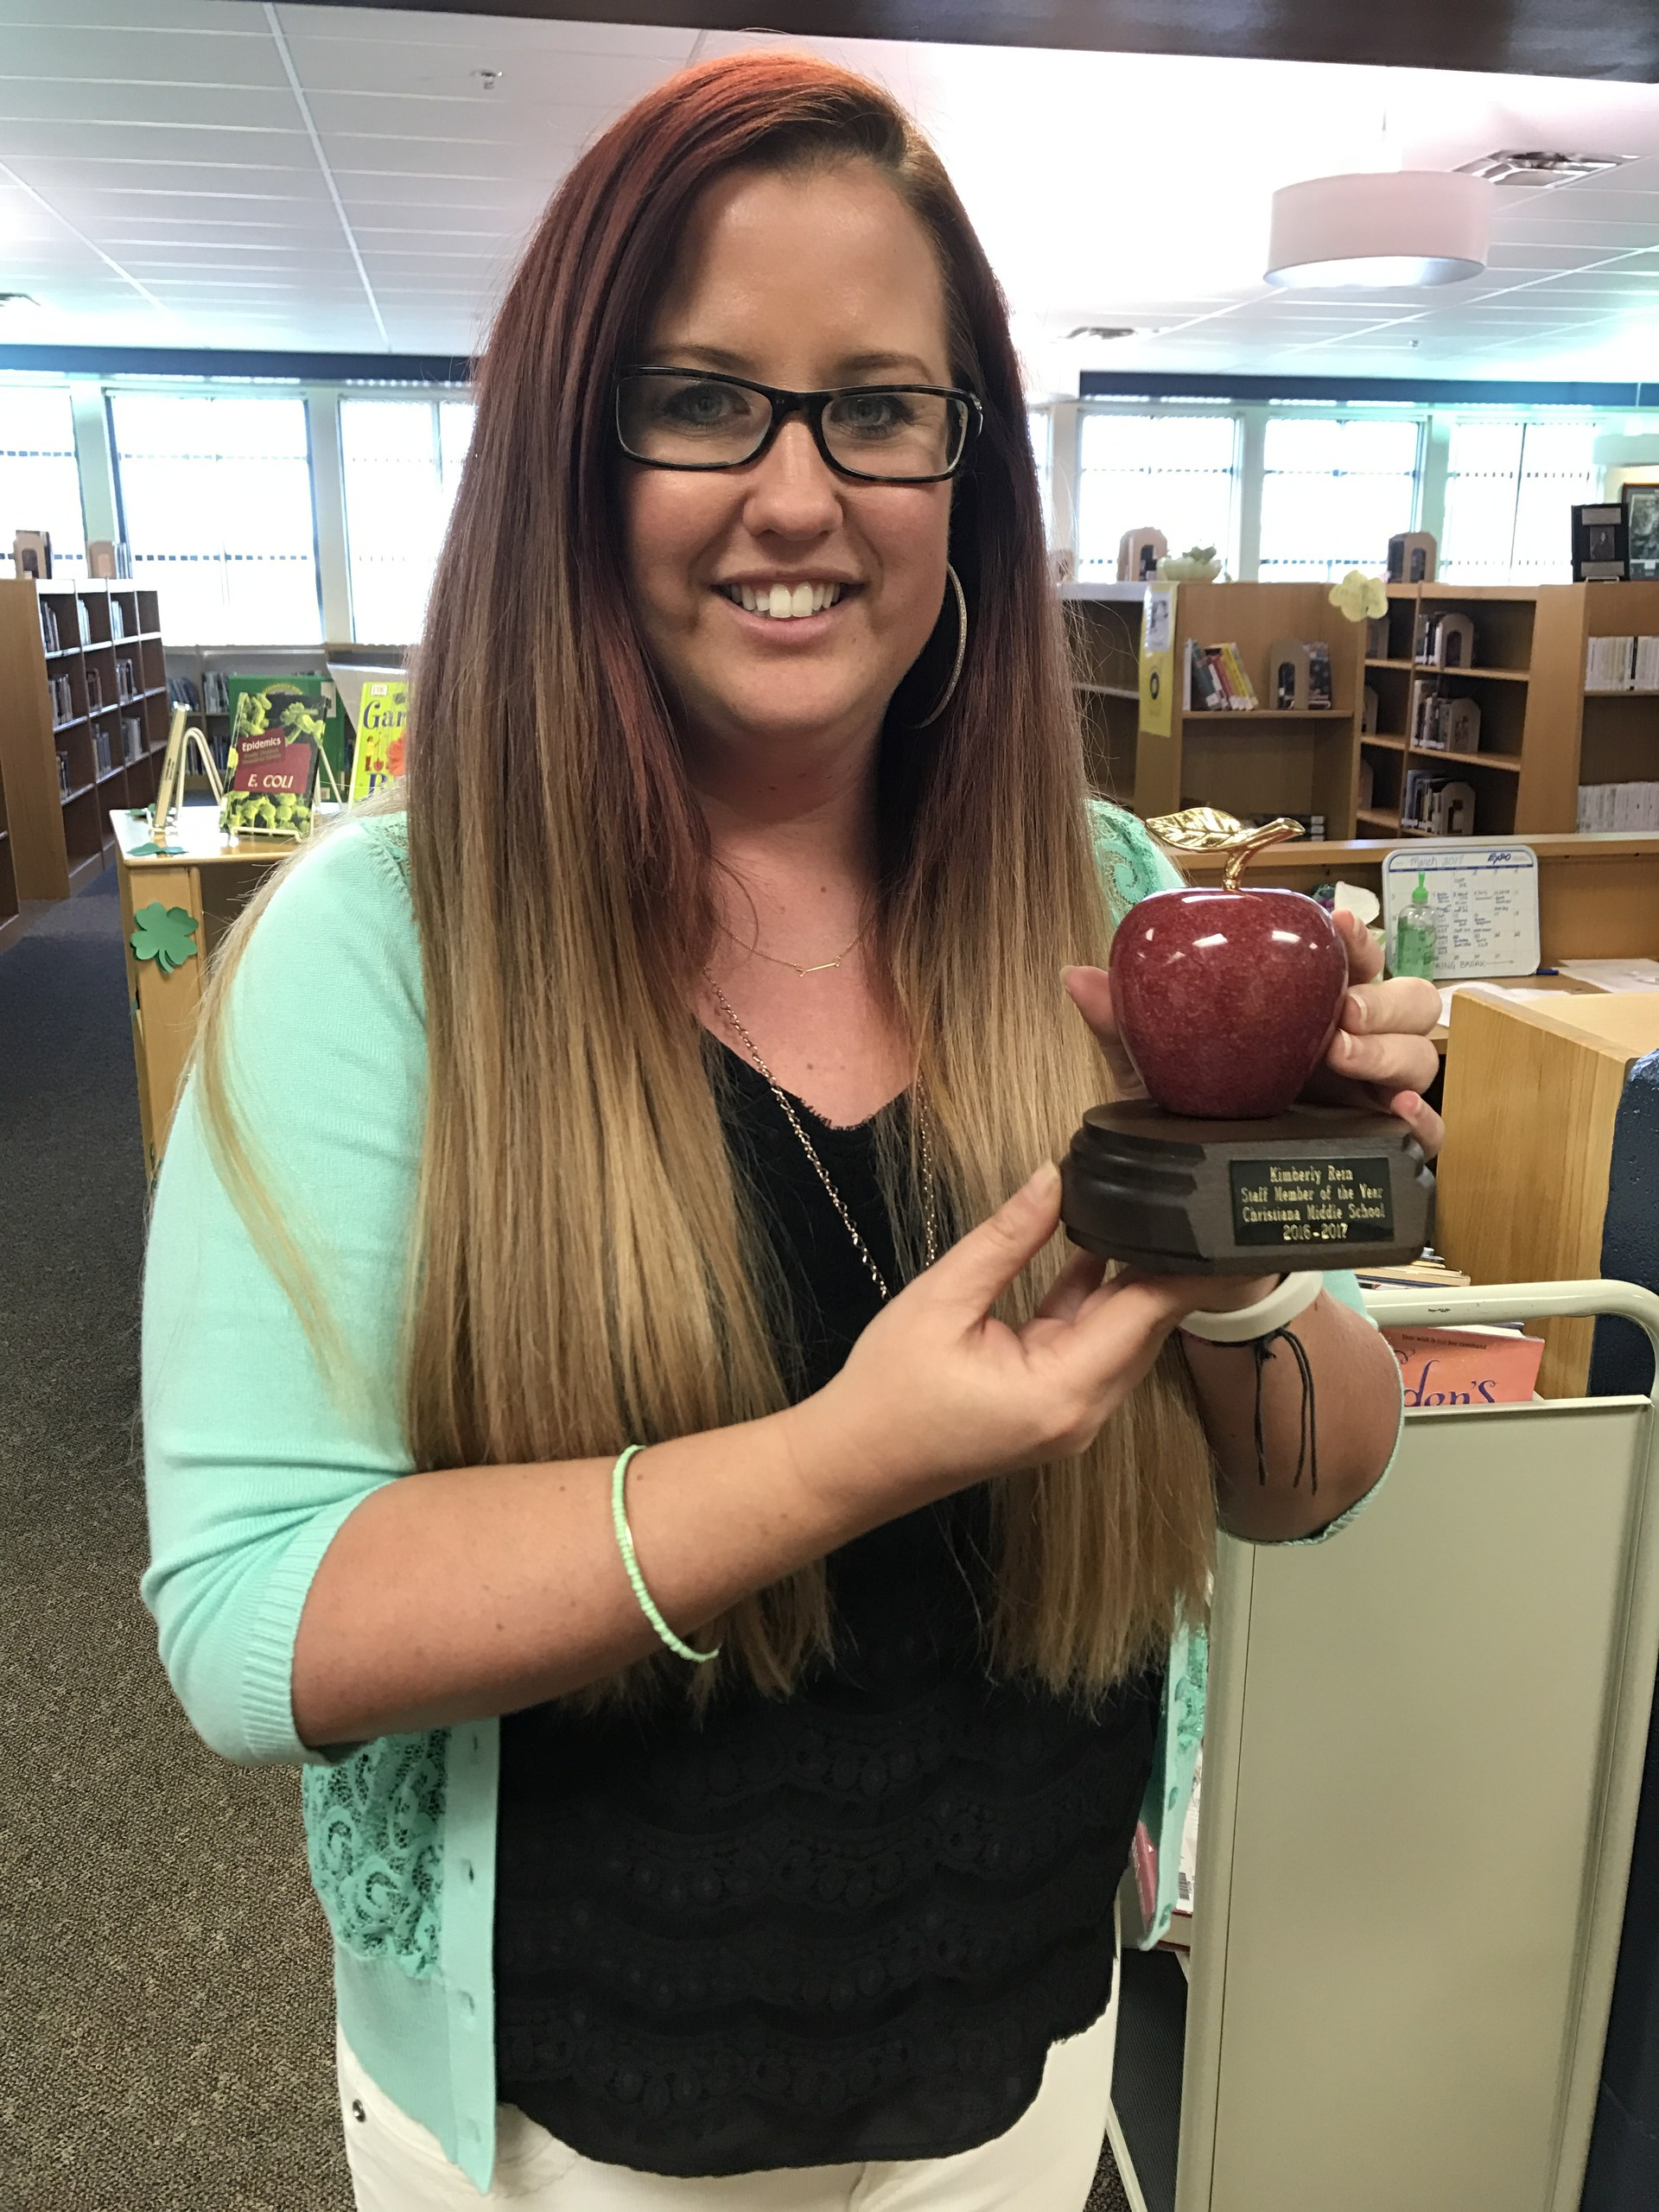 Ms. Rein named CHMS 2016 Staff Member of the Year